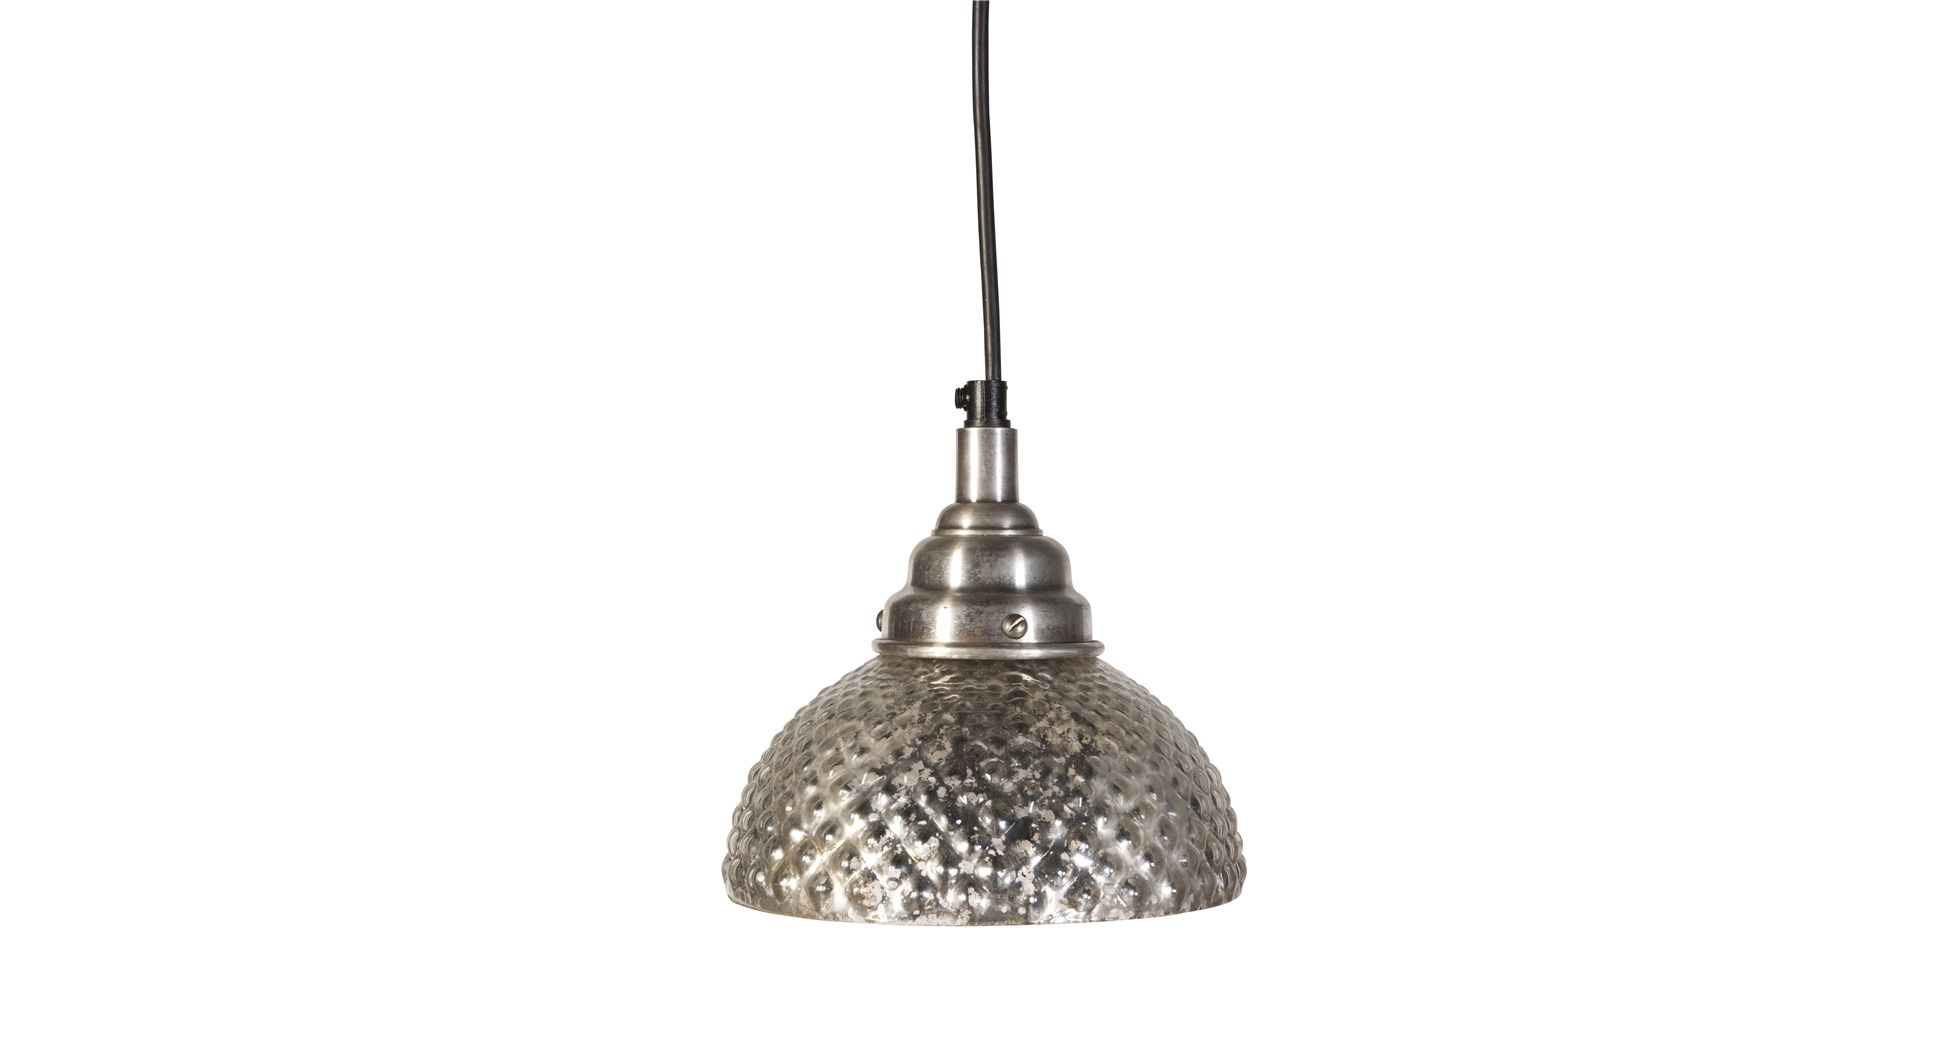 Mercury Glass Pendant Light Fixture Custom Lightingmercuryglasspendantlightsatanthropologiechicour Inspiration Design